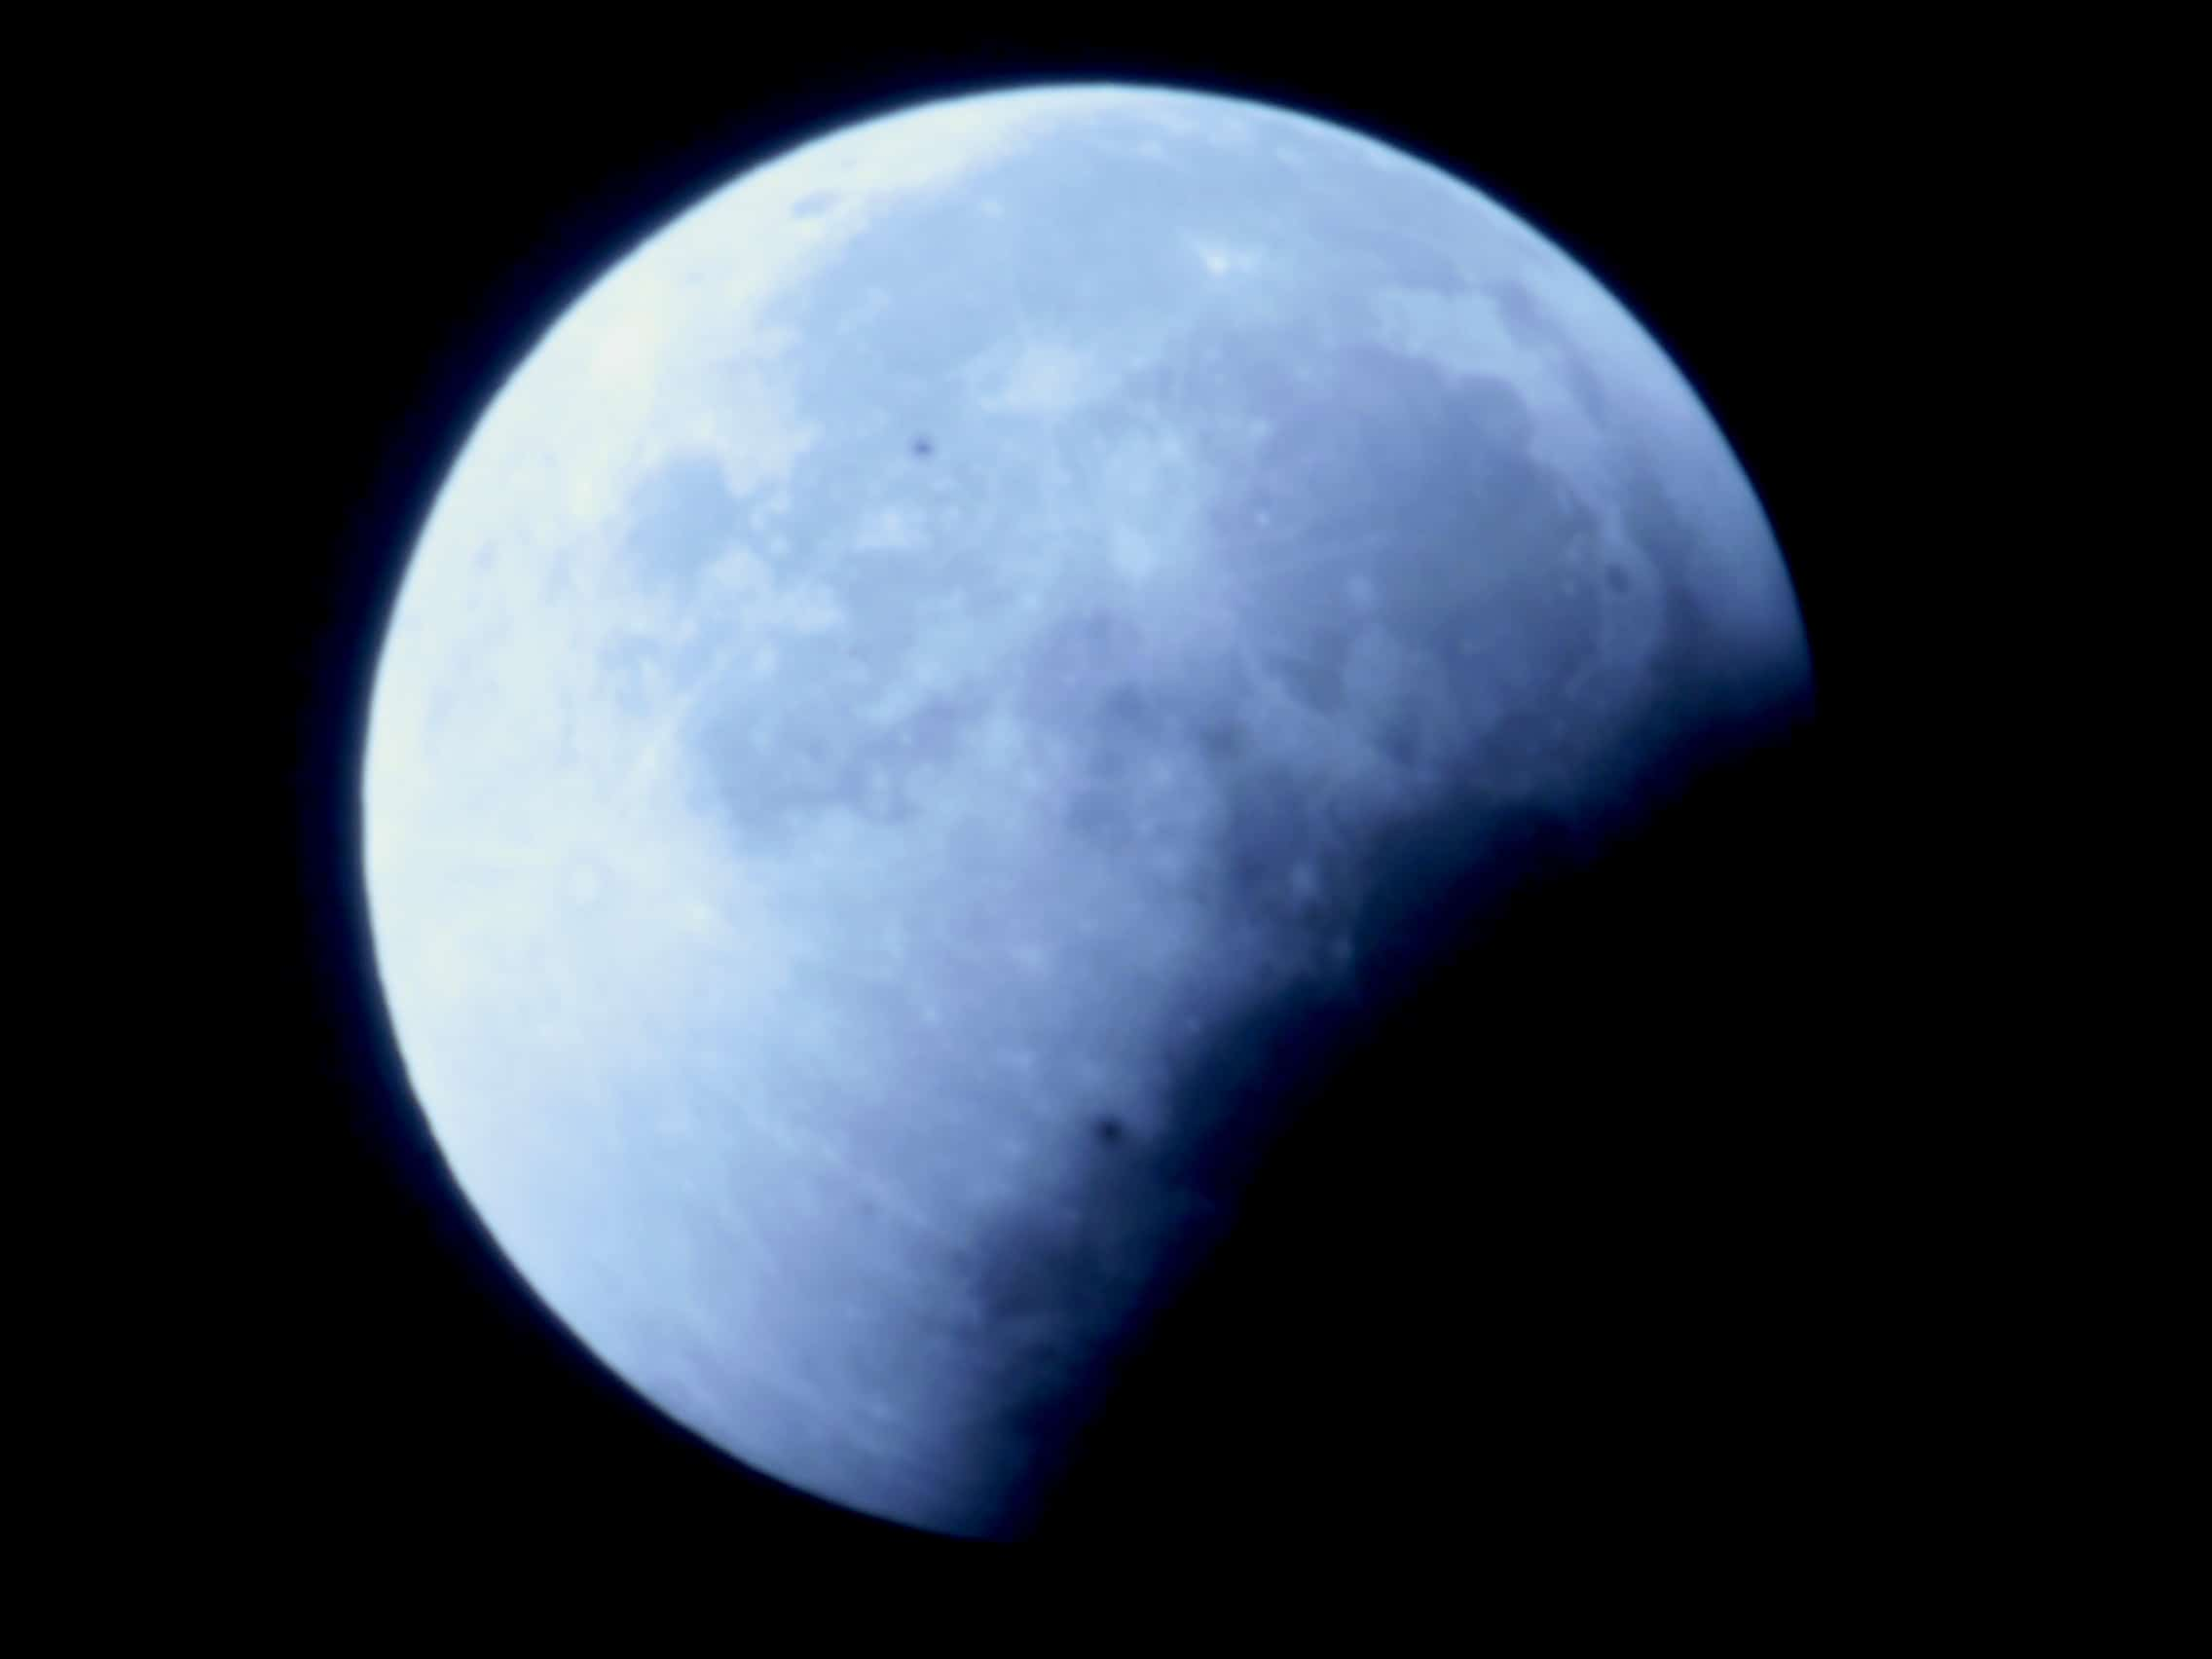 Eclipse luna 28-9-15 026A